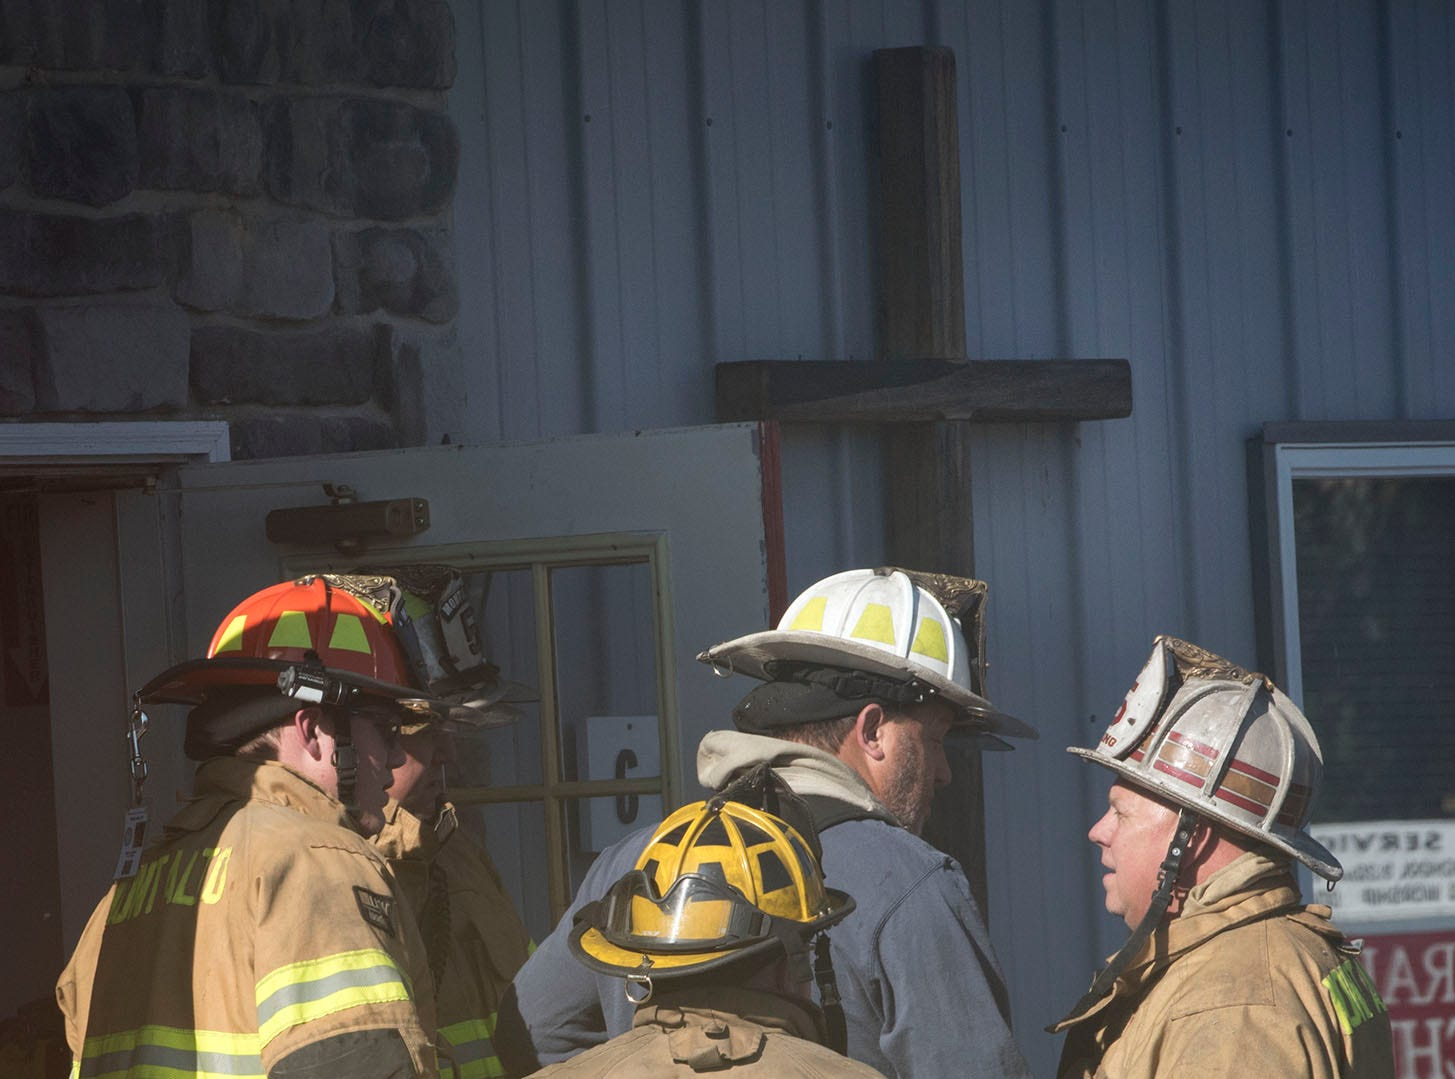 A working fire was reported just before 1 p.m. at Central Baptist Church 6025 Anthony Highway, on Sunday, November 4, 2018. The church is across the street from Mont Alto Volunteer Fire Company. No injuries were reported during the fire.